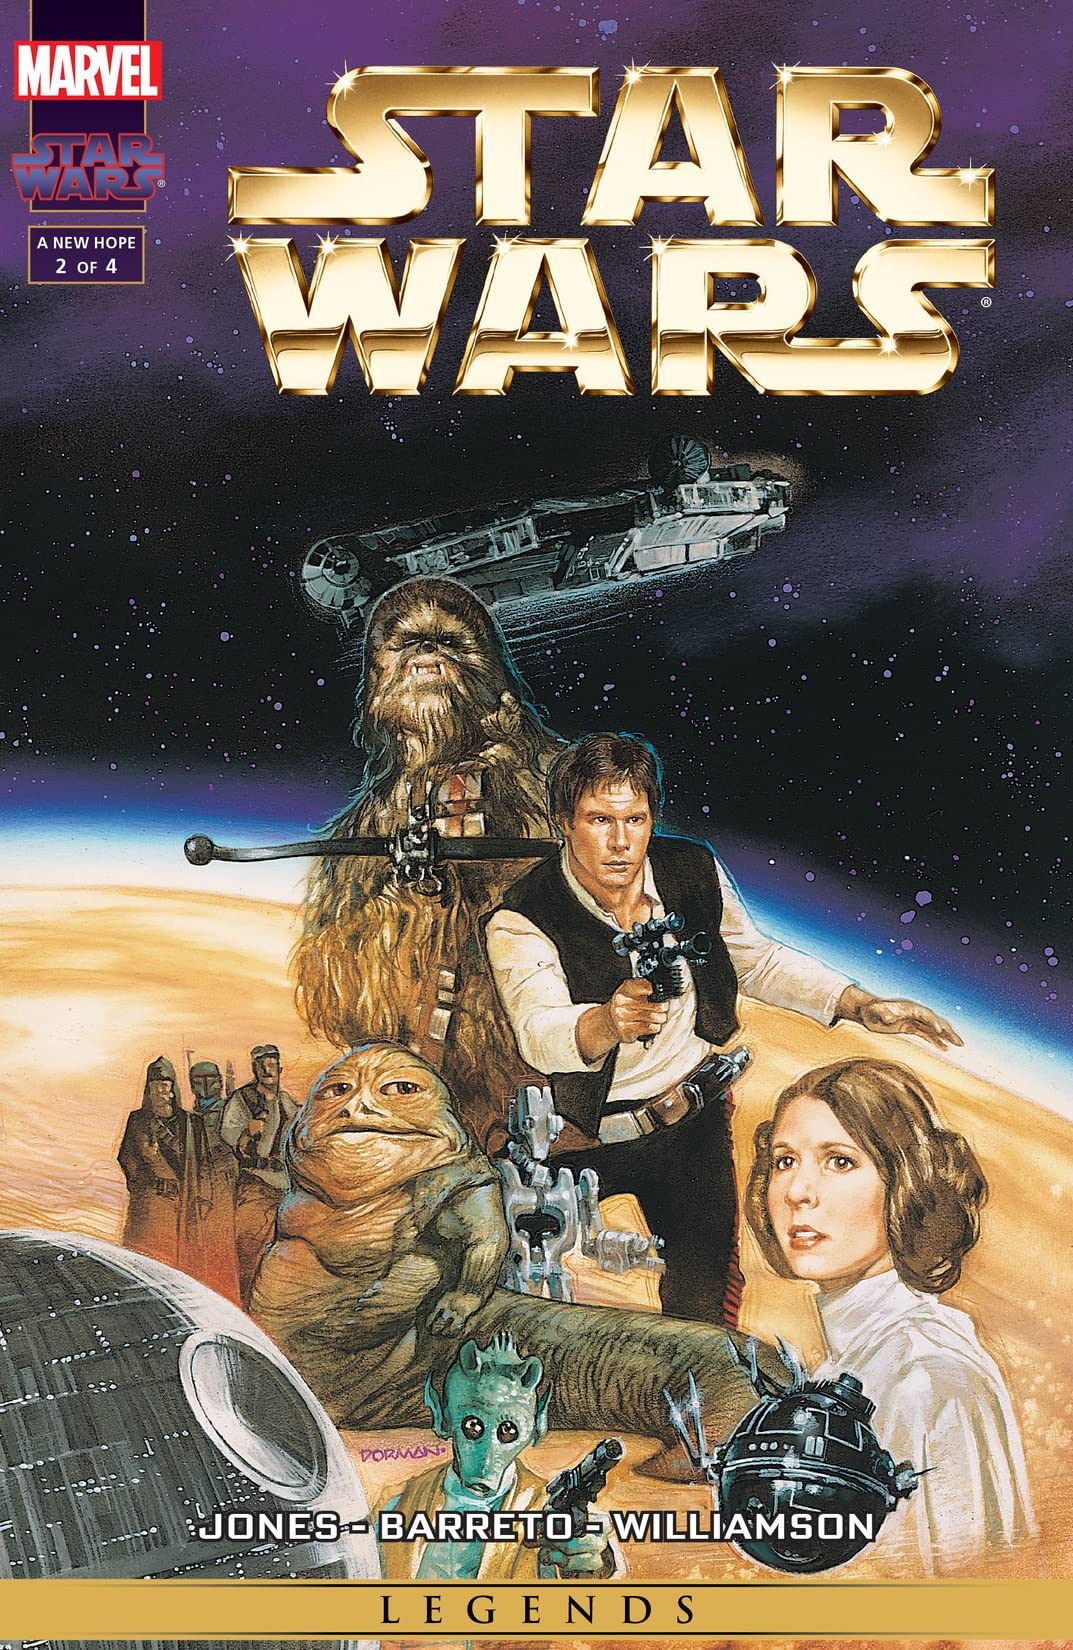 Star Wars: A New Hope - Special Edition (1997) #2 (of 4)